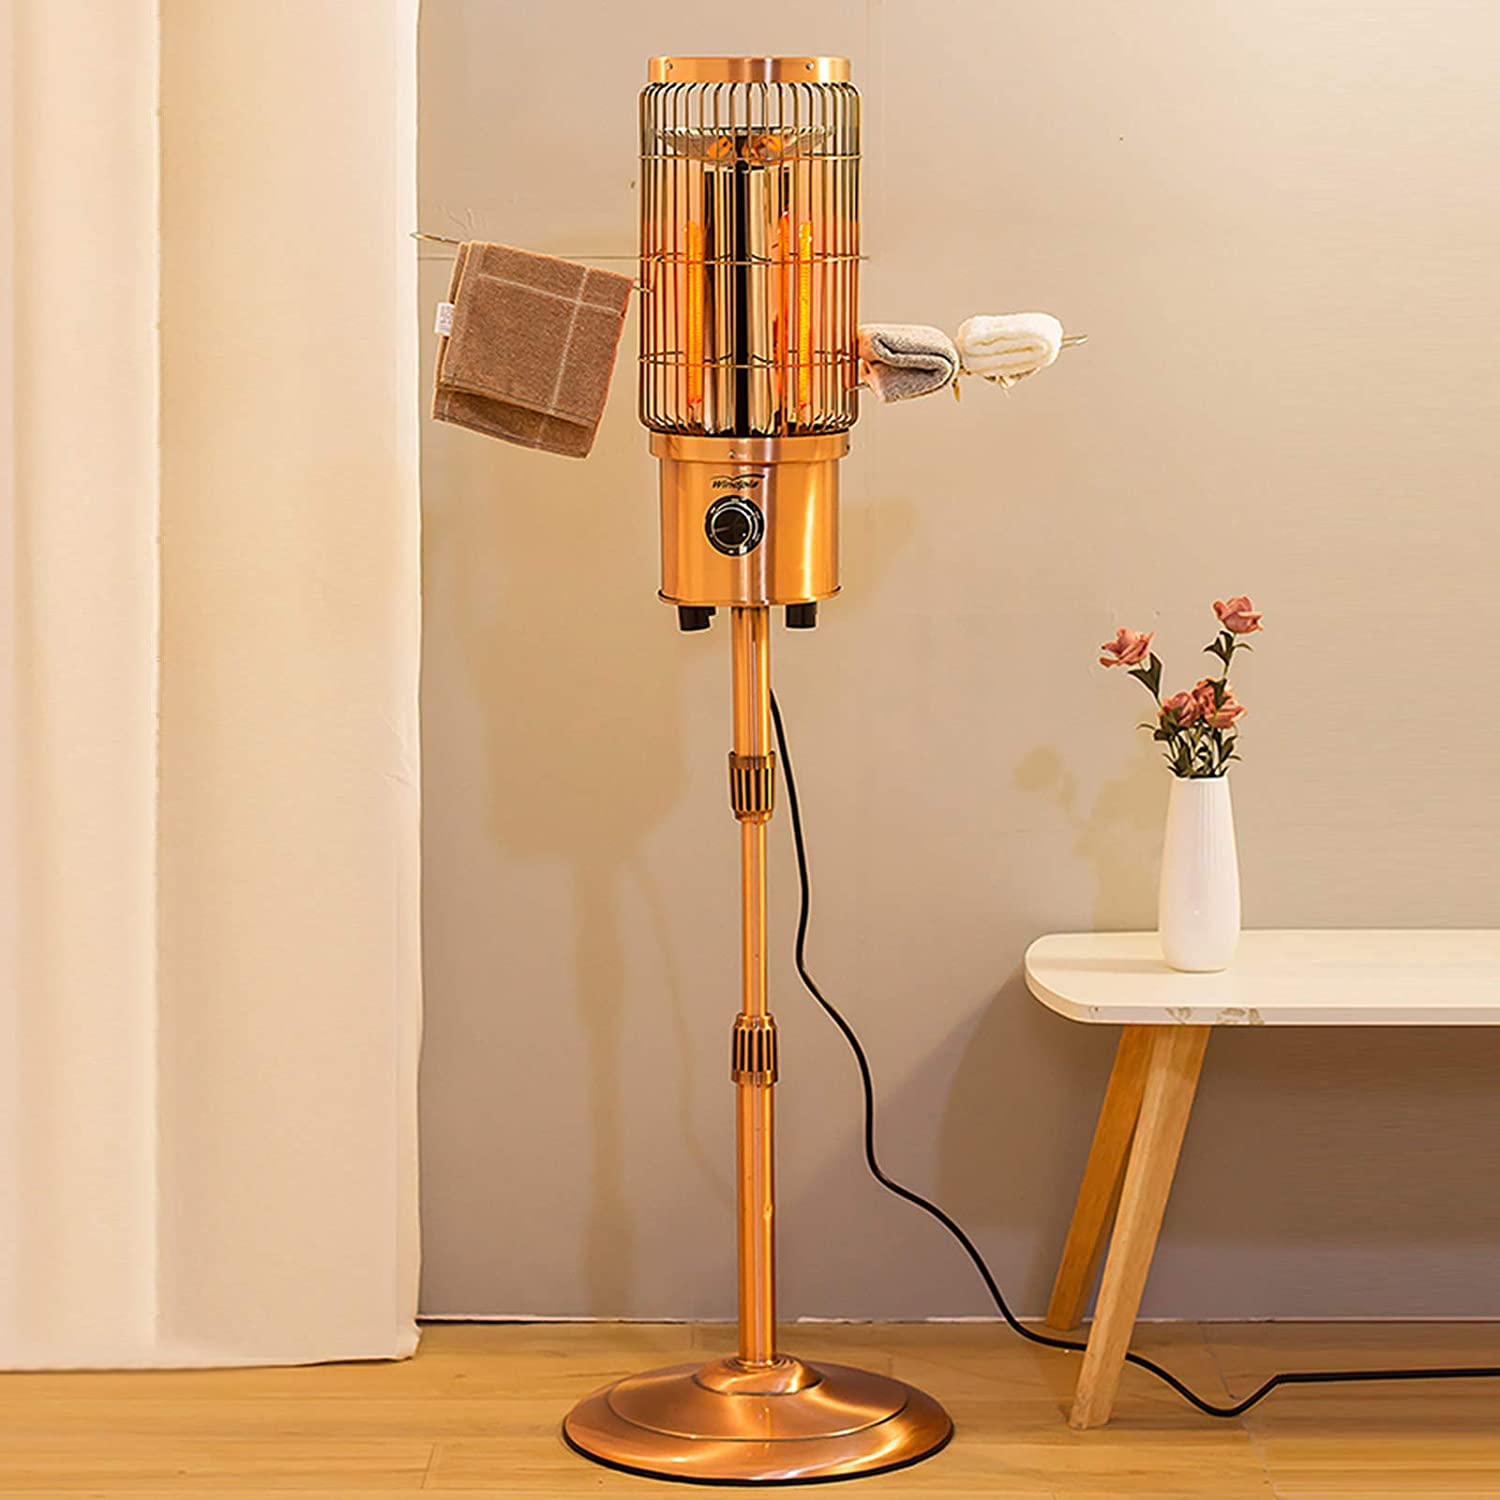 XM&LZ Adjustable Height Electric Heater with Towel Rack,Commercial Home Infrared Heater Patio Heater,Outdoor Heater Office Restaurant